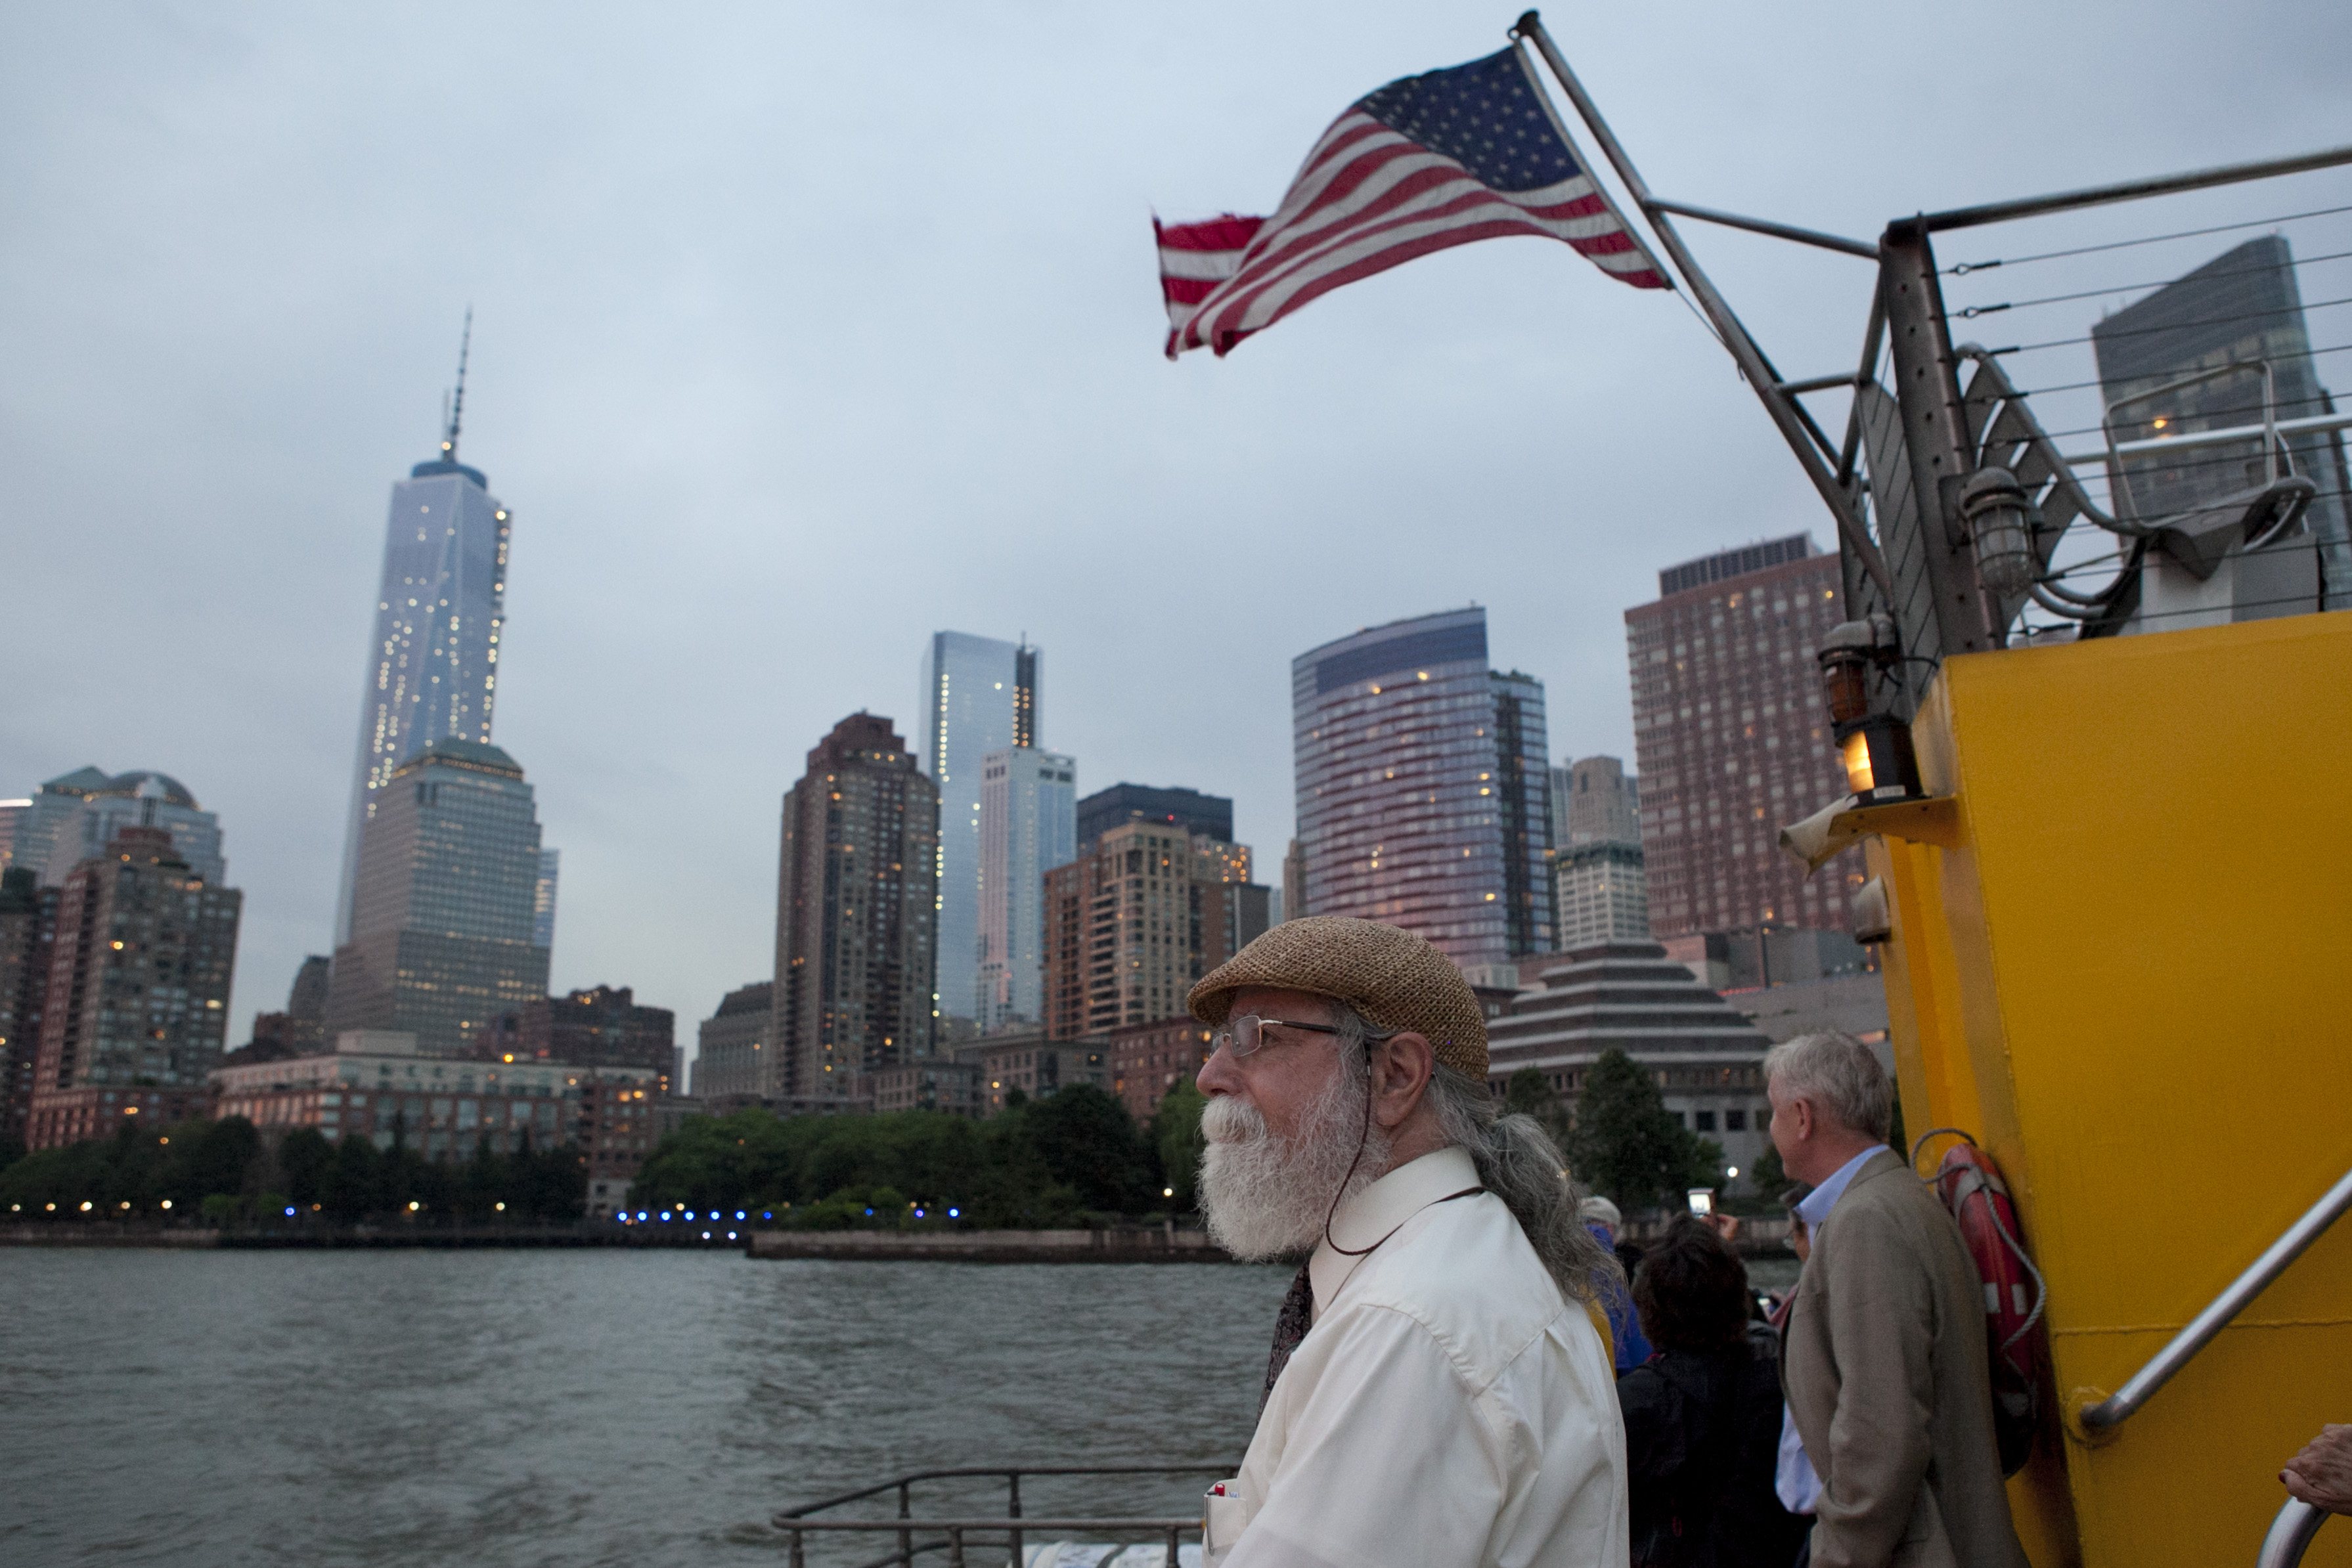 Former Harbor Supervisor Says Sandy Recovery Offers Potential (+Video)